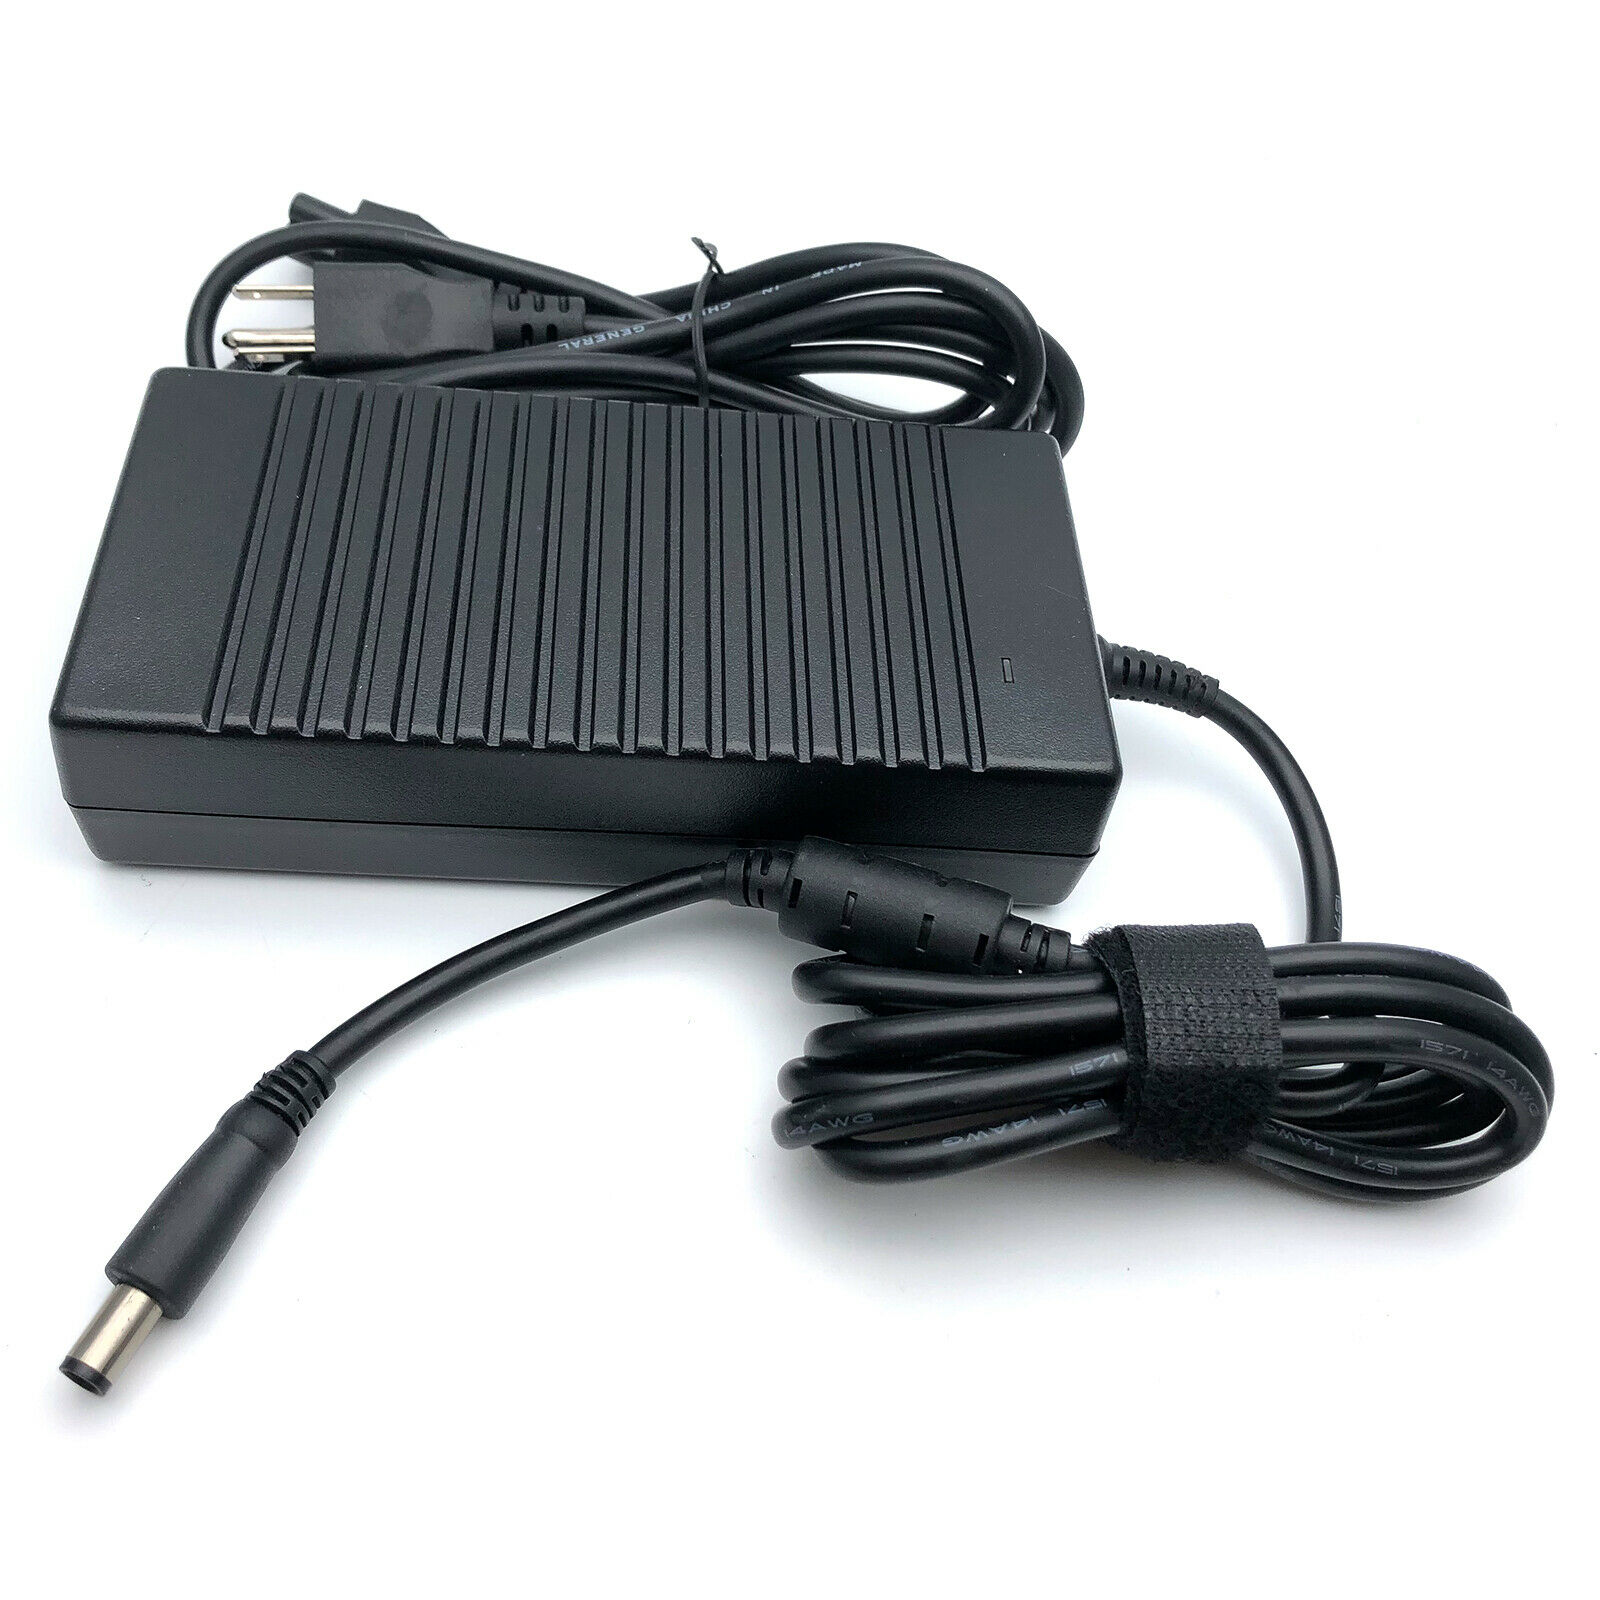 150W 19.5v OEM DELL XPS M170 L401X L501X L702X AC Power Supply Cord Charger